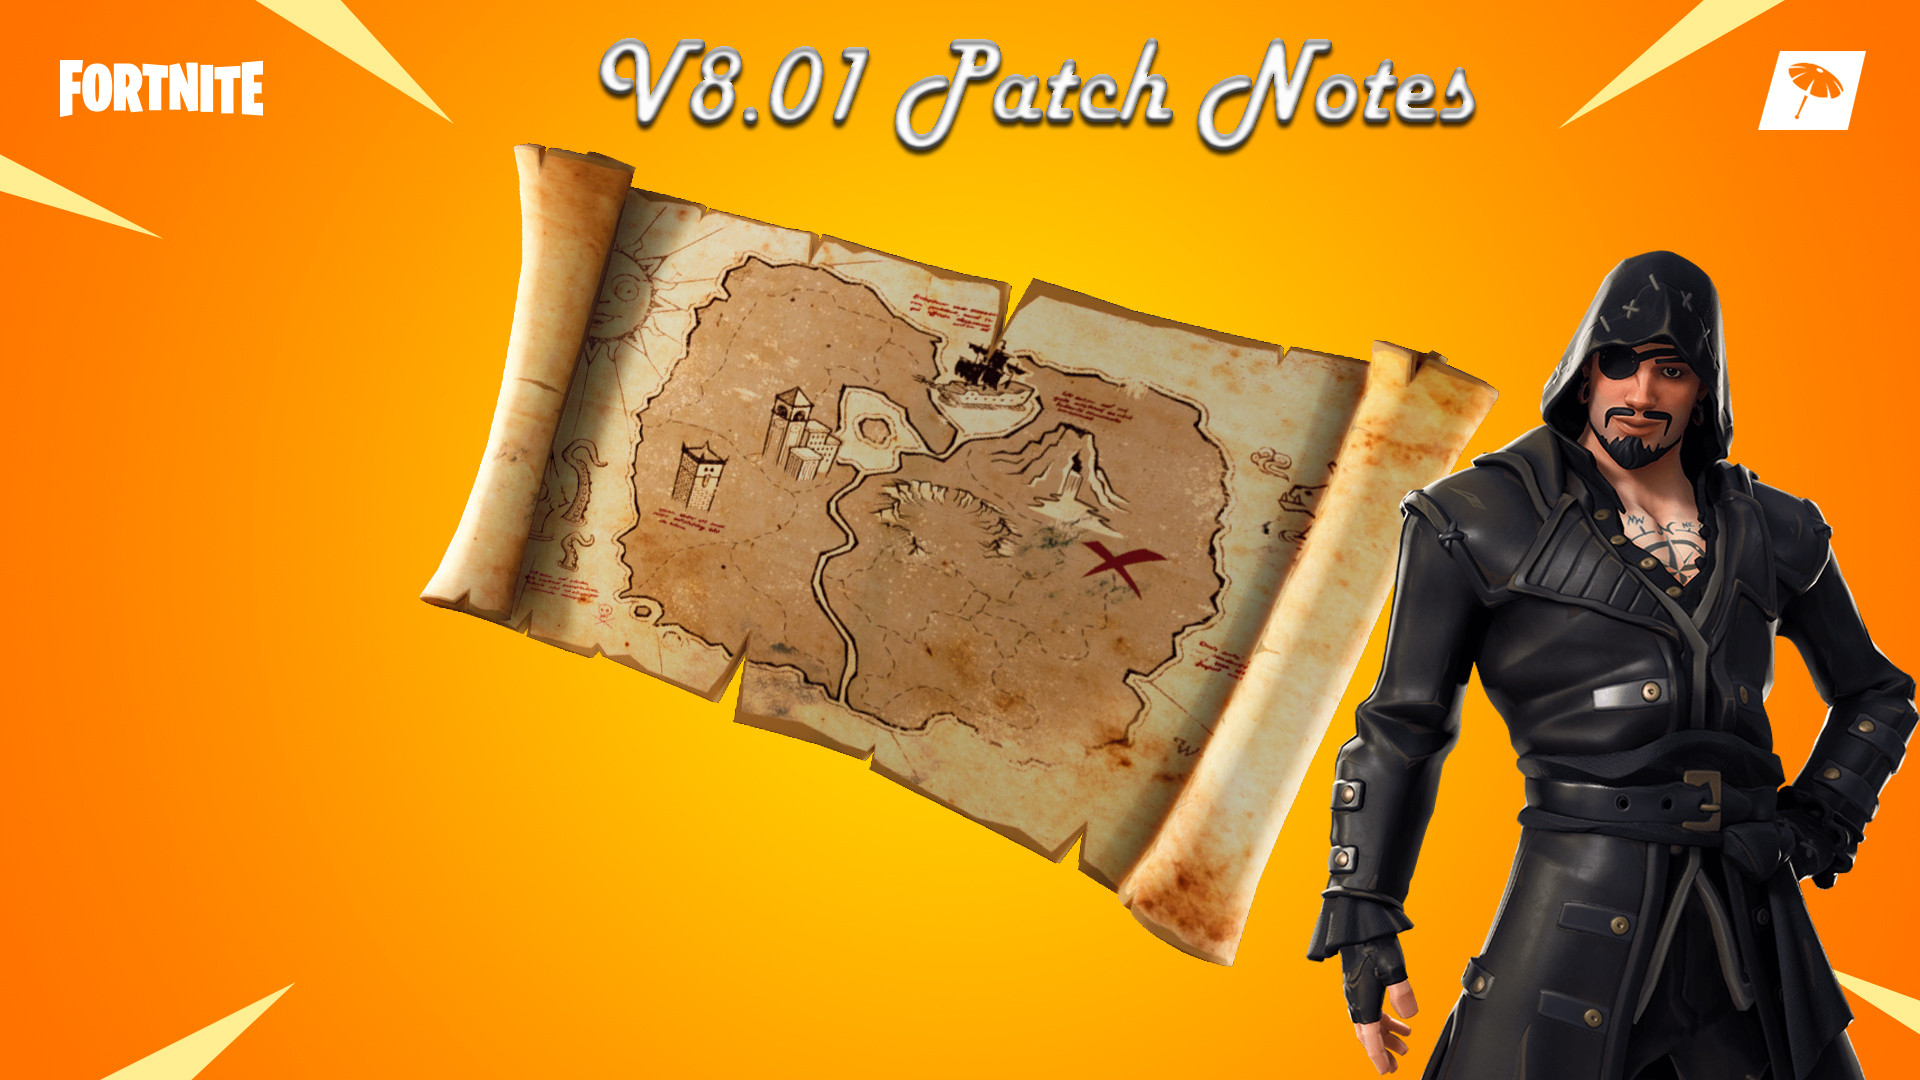 v8.01 Patch Notes - Fortnite - zilliongamer